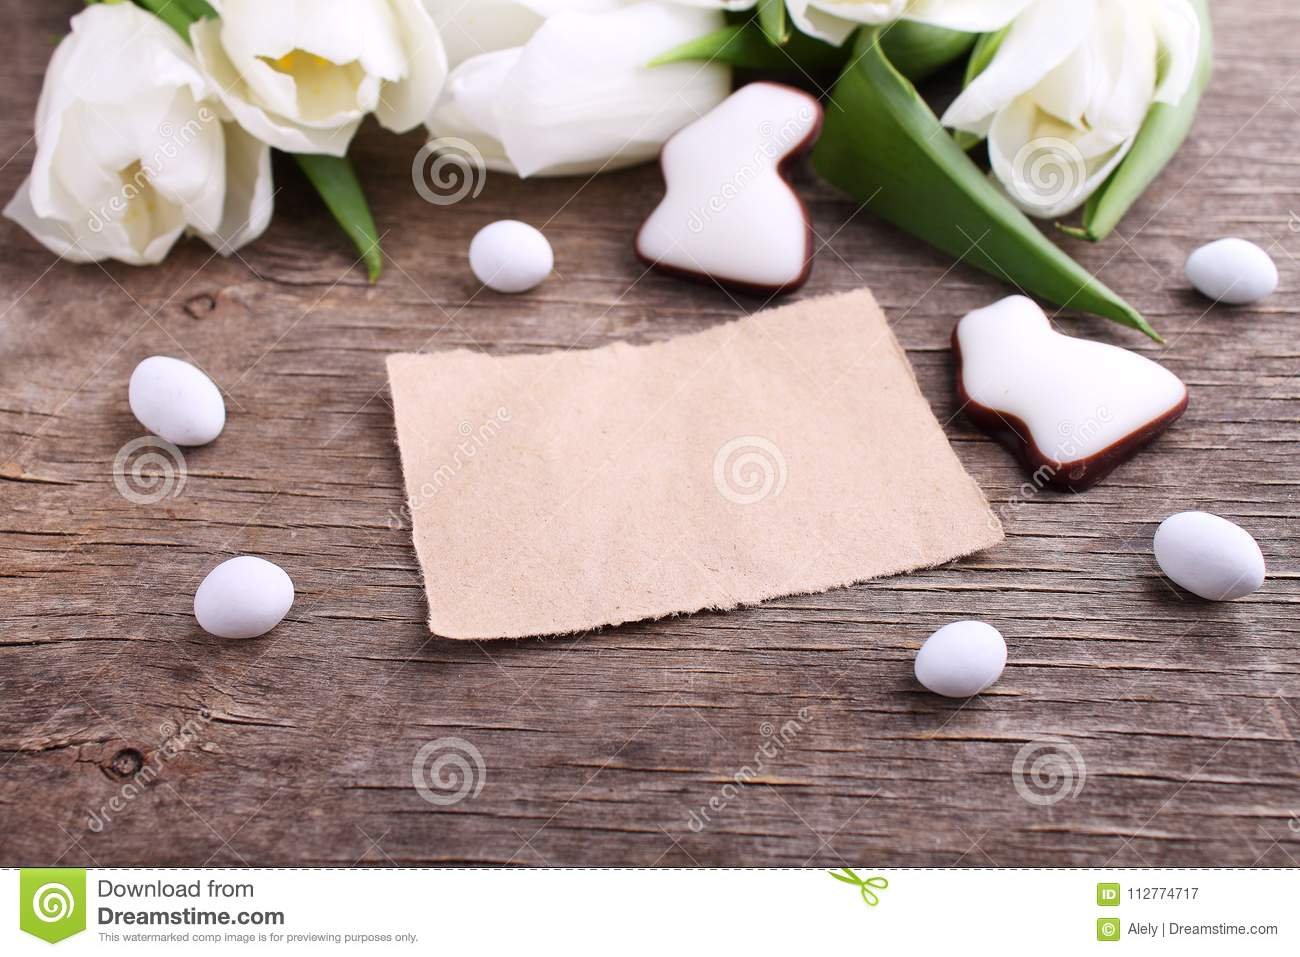 Happy Easter greeting card with white tulip and chocolate eggs and bunny